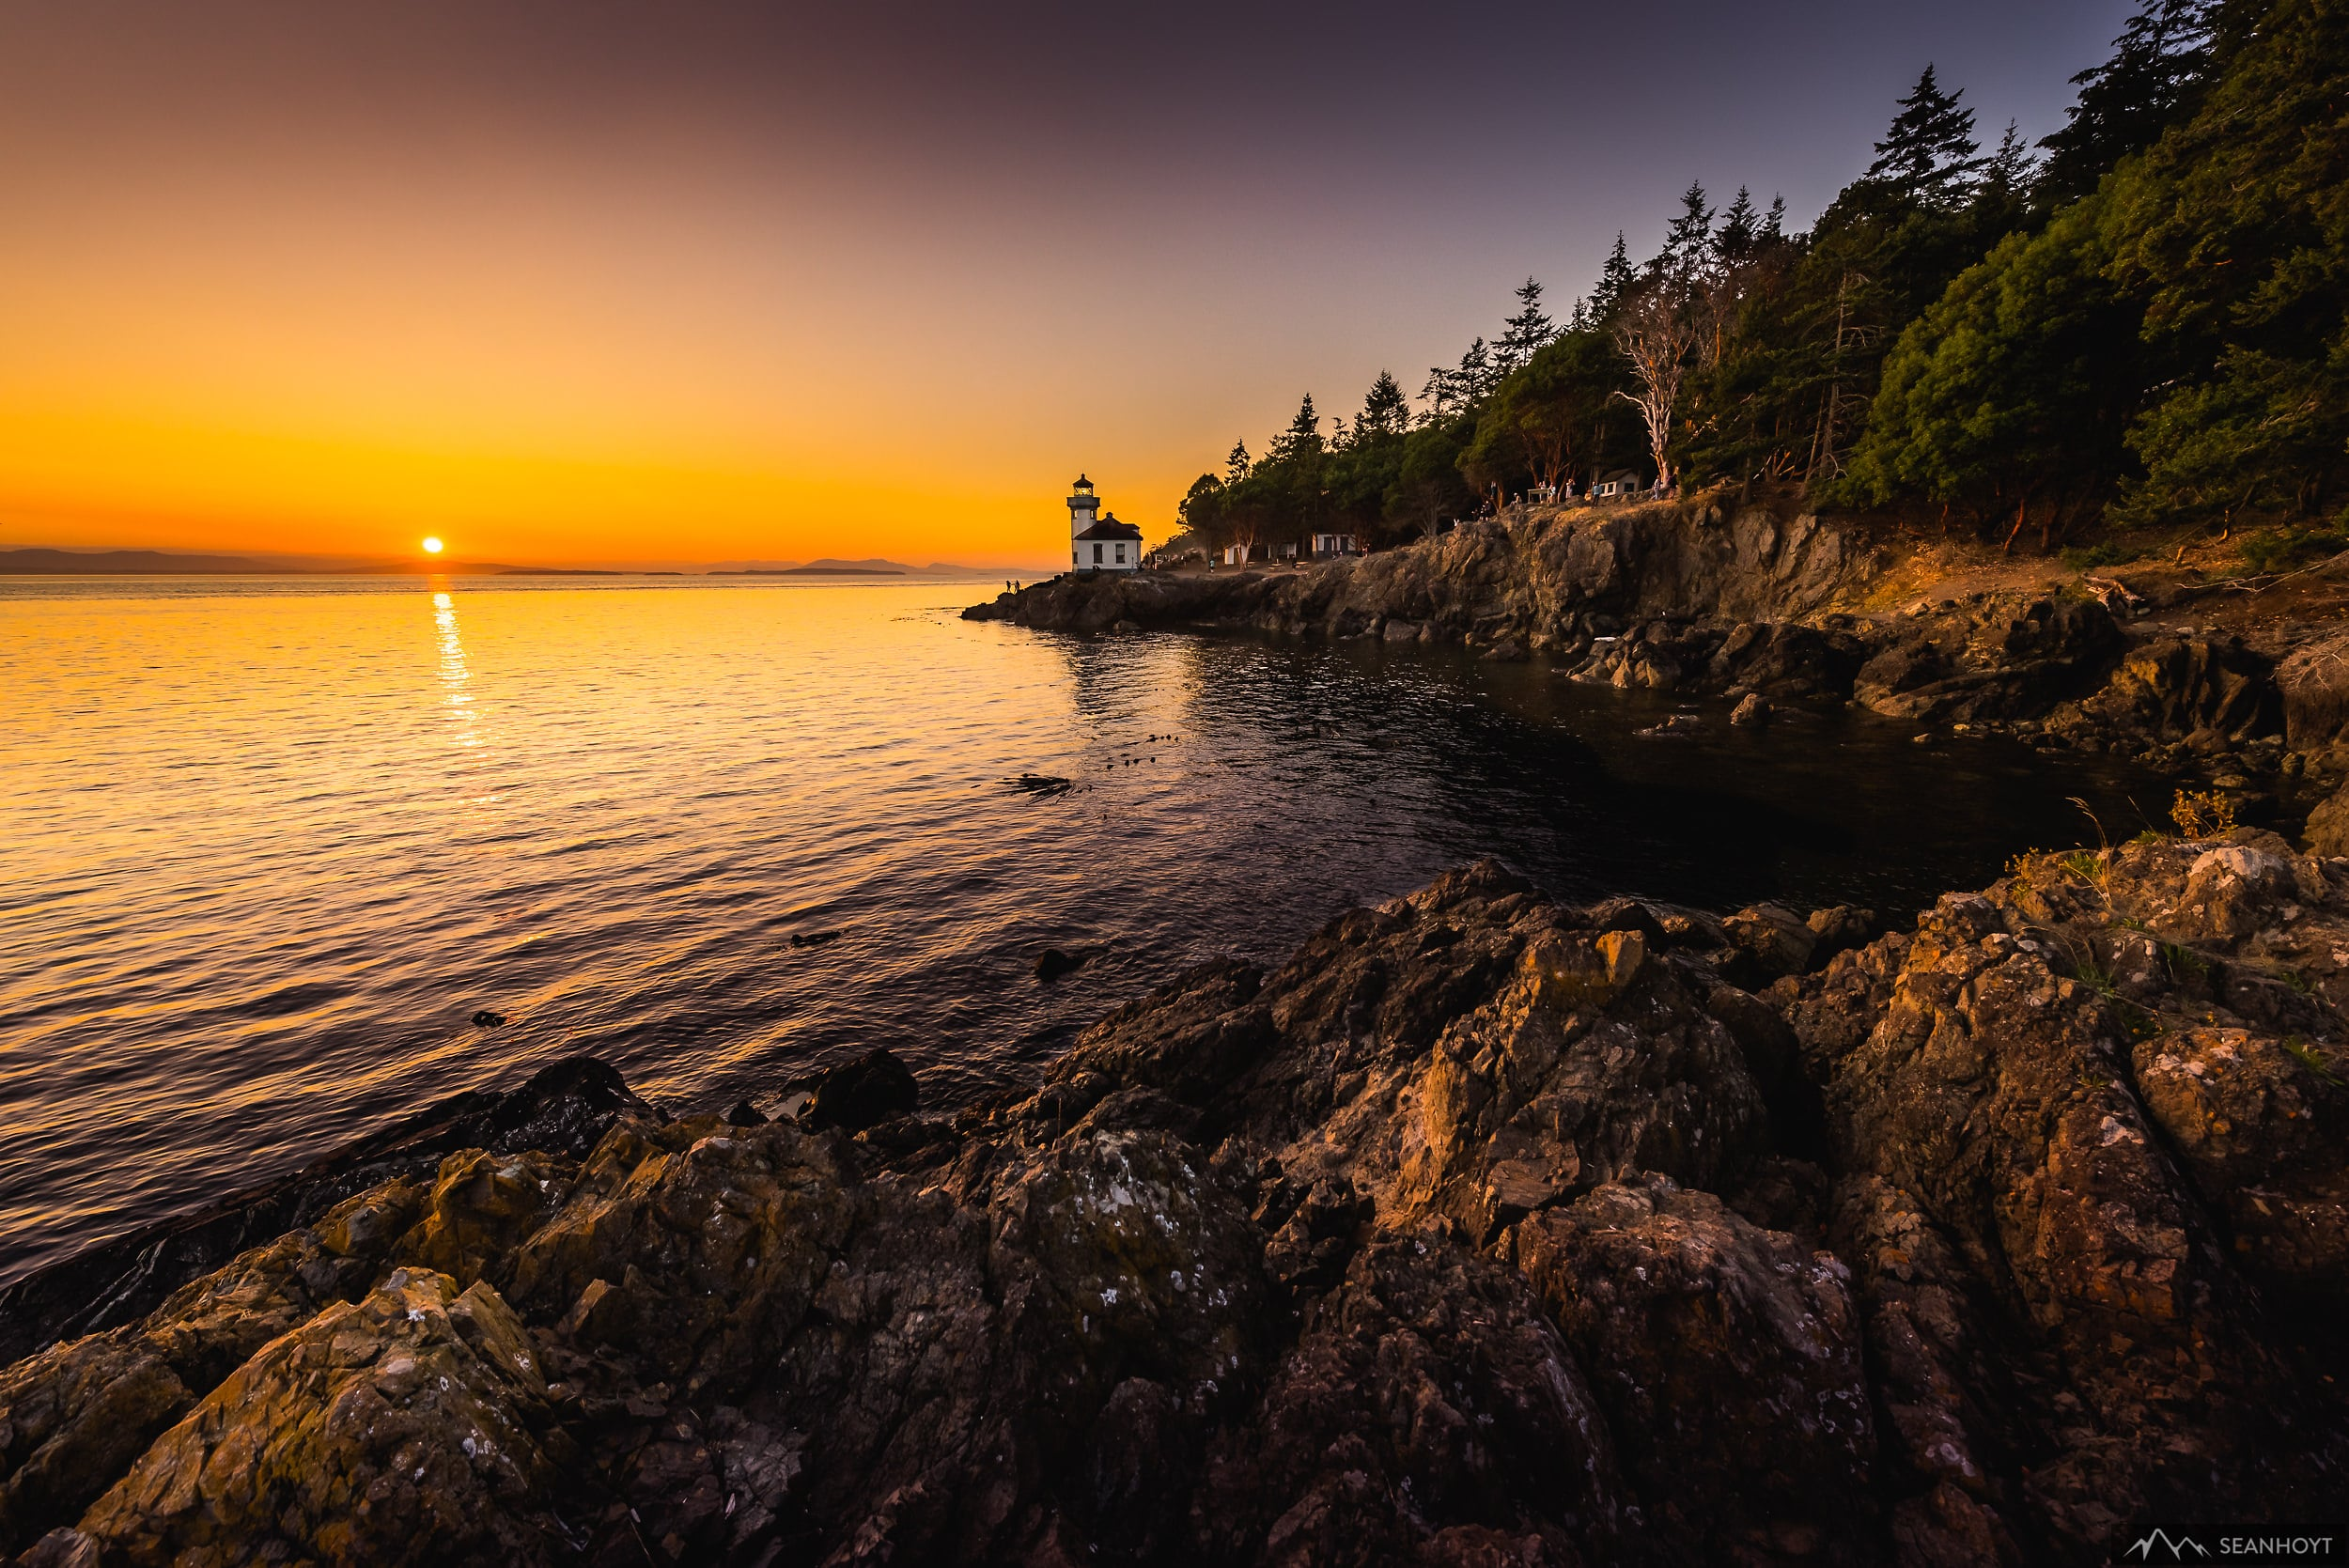 Fall Getaway to enjoy all of the best things to do in Friday Harbor